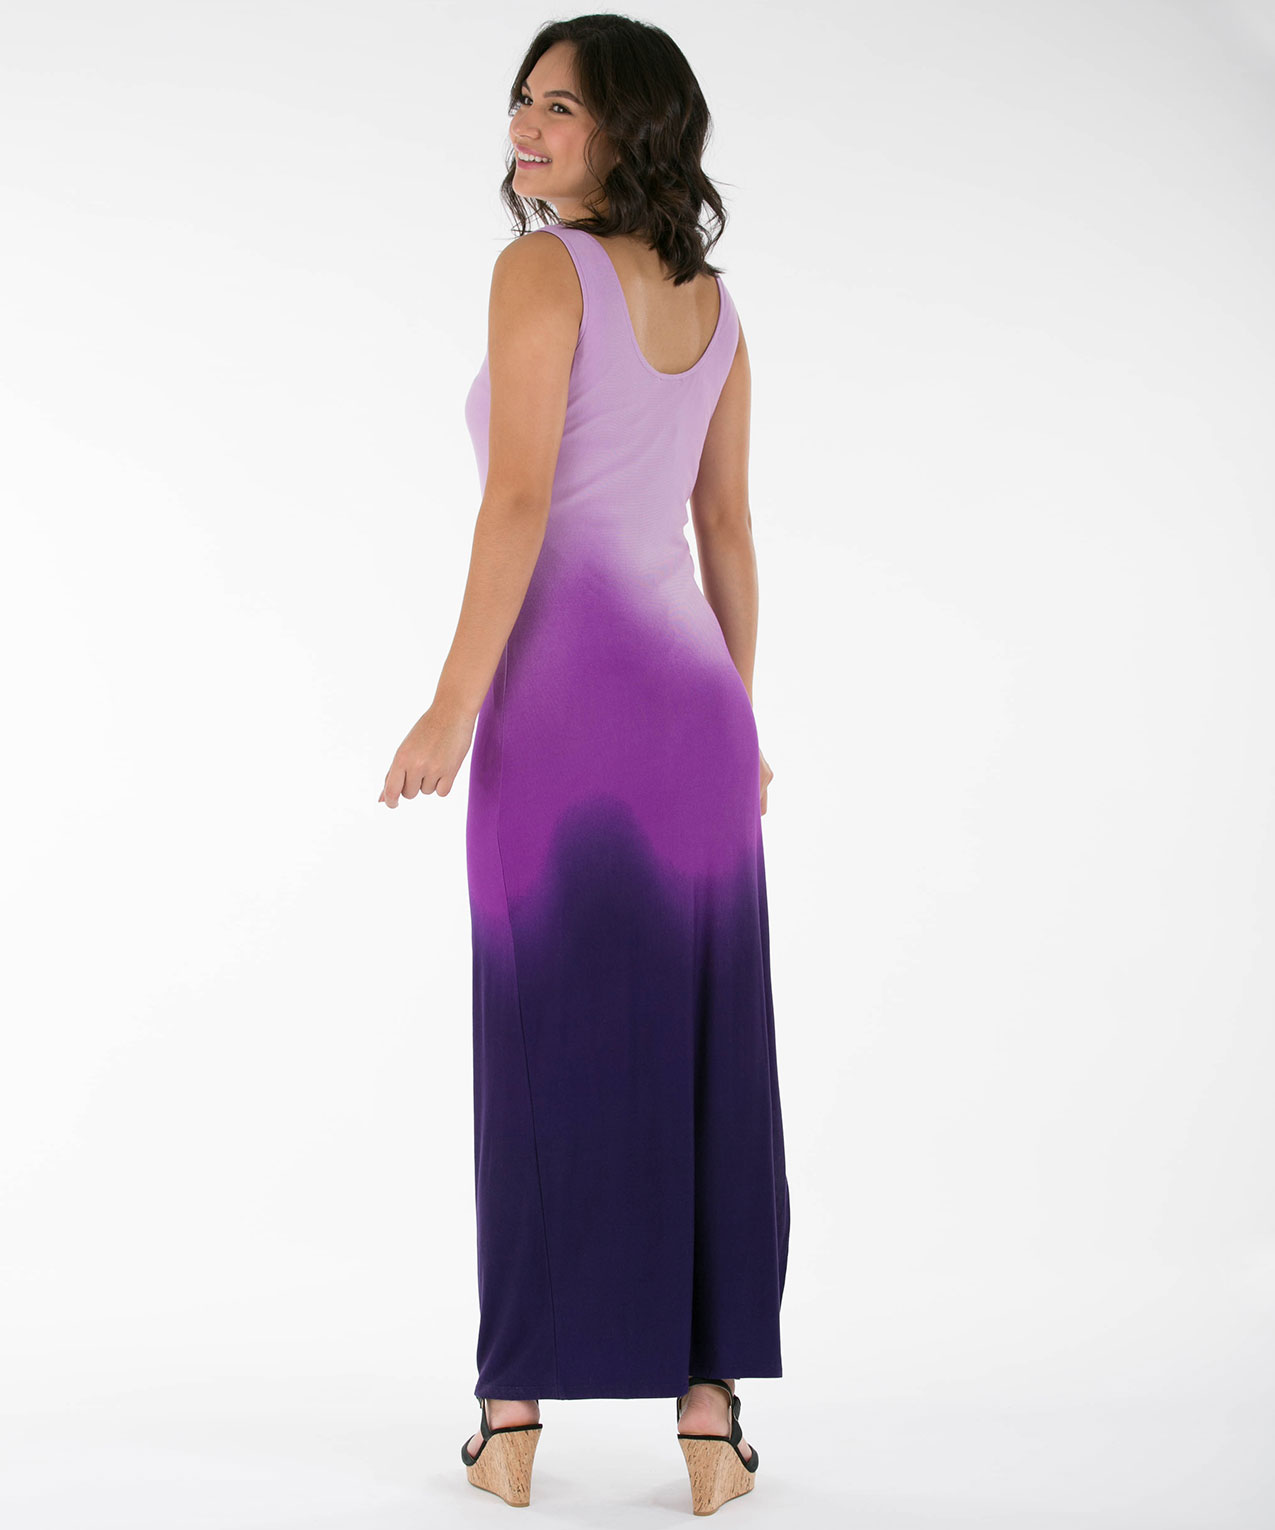 b90ebf1034 ... Ombre Side Ruched Maxi Dress